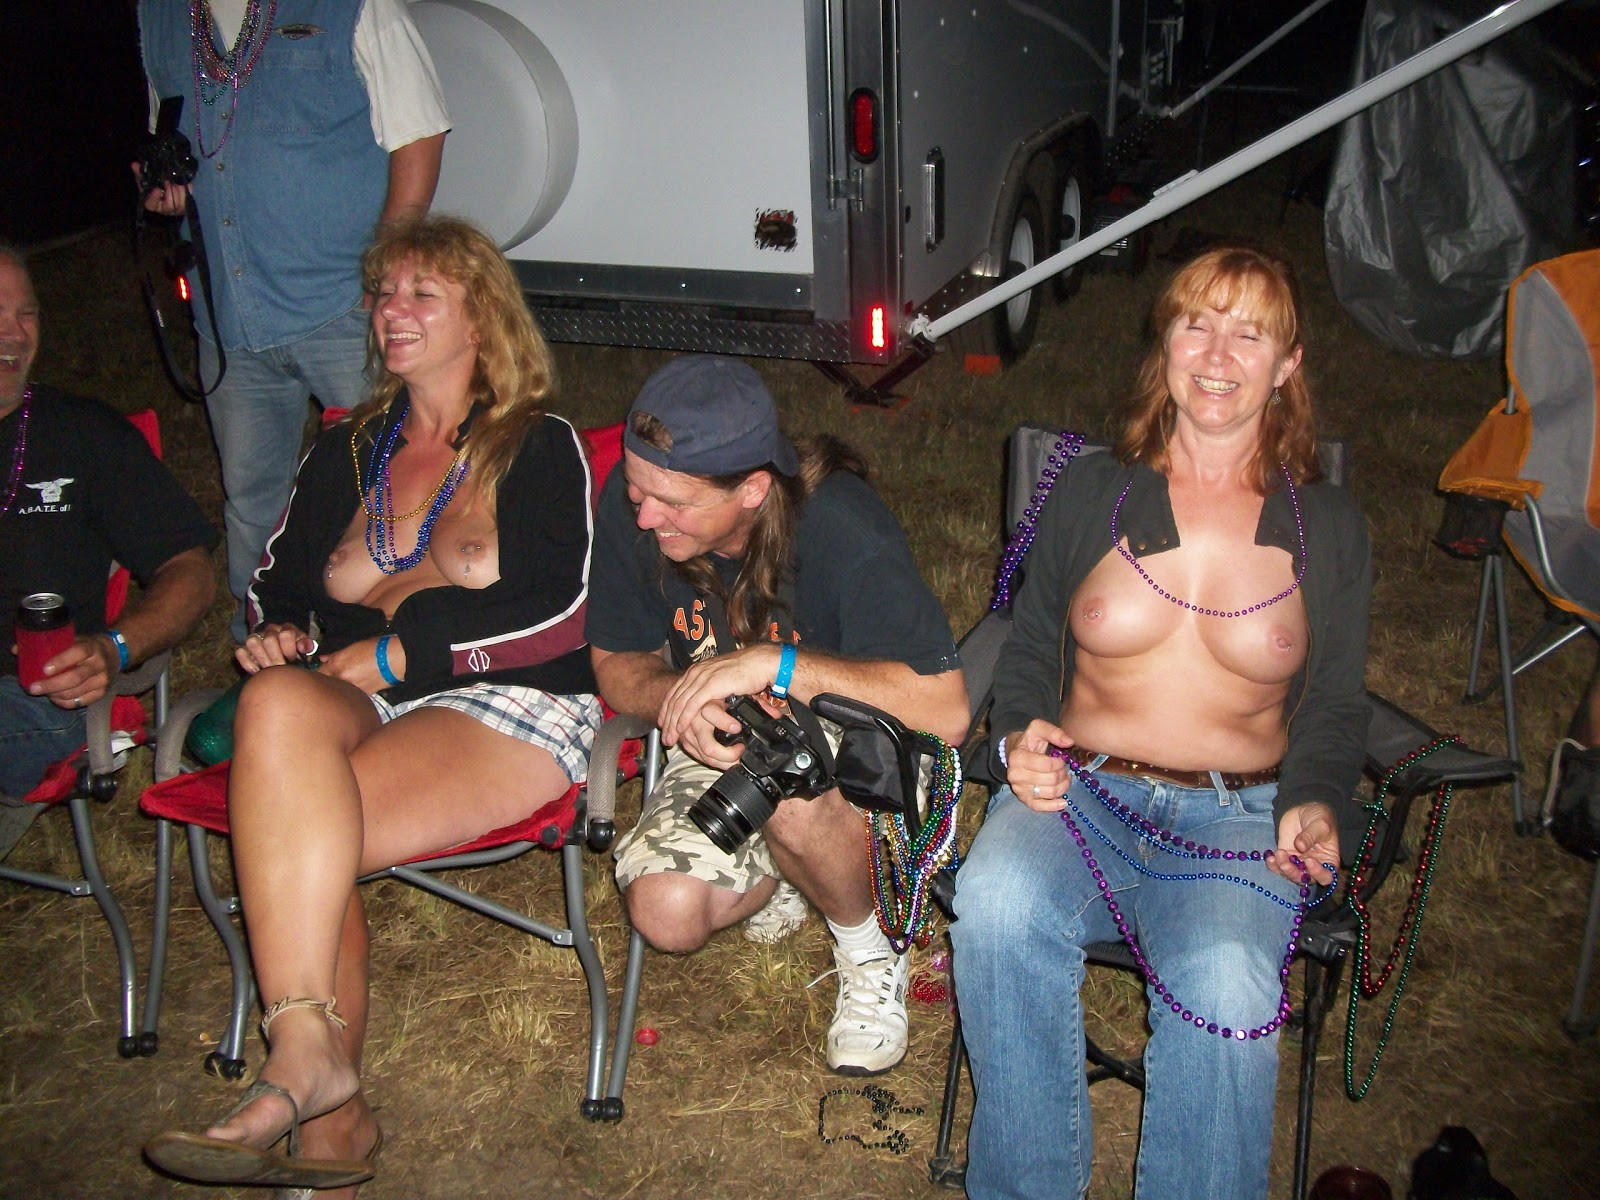 Topic, Chick gets fucked at biker rally think, that